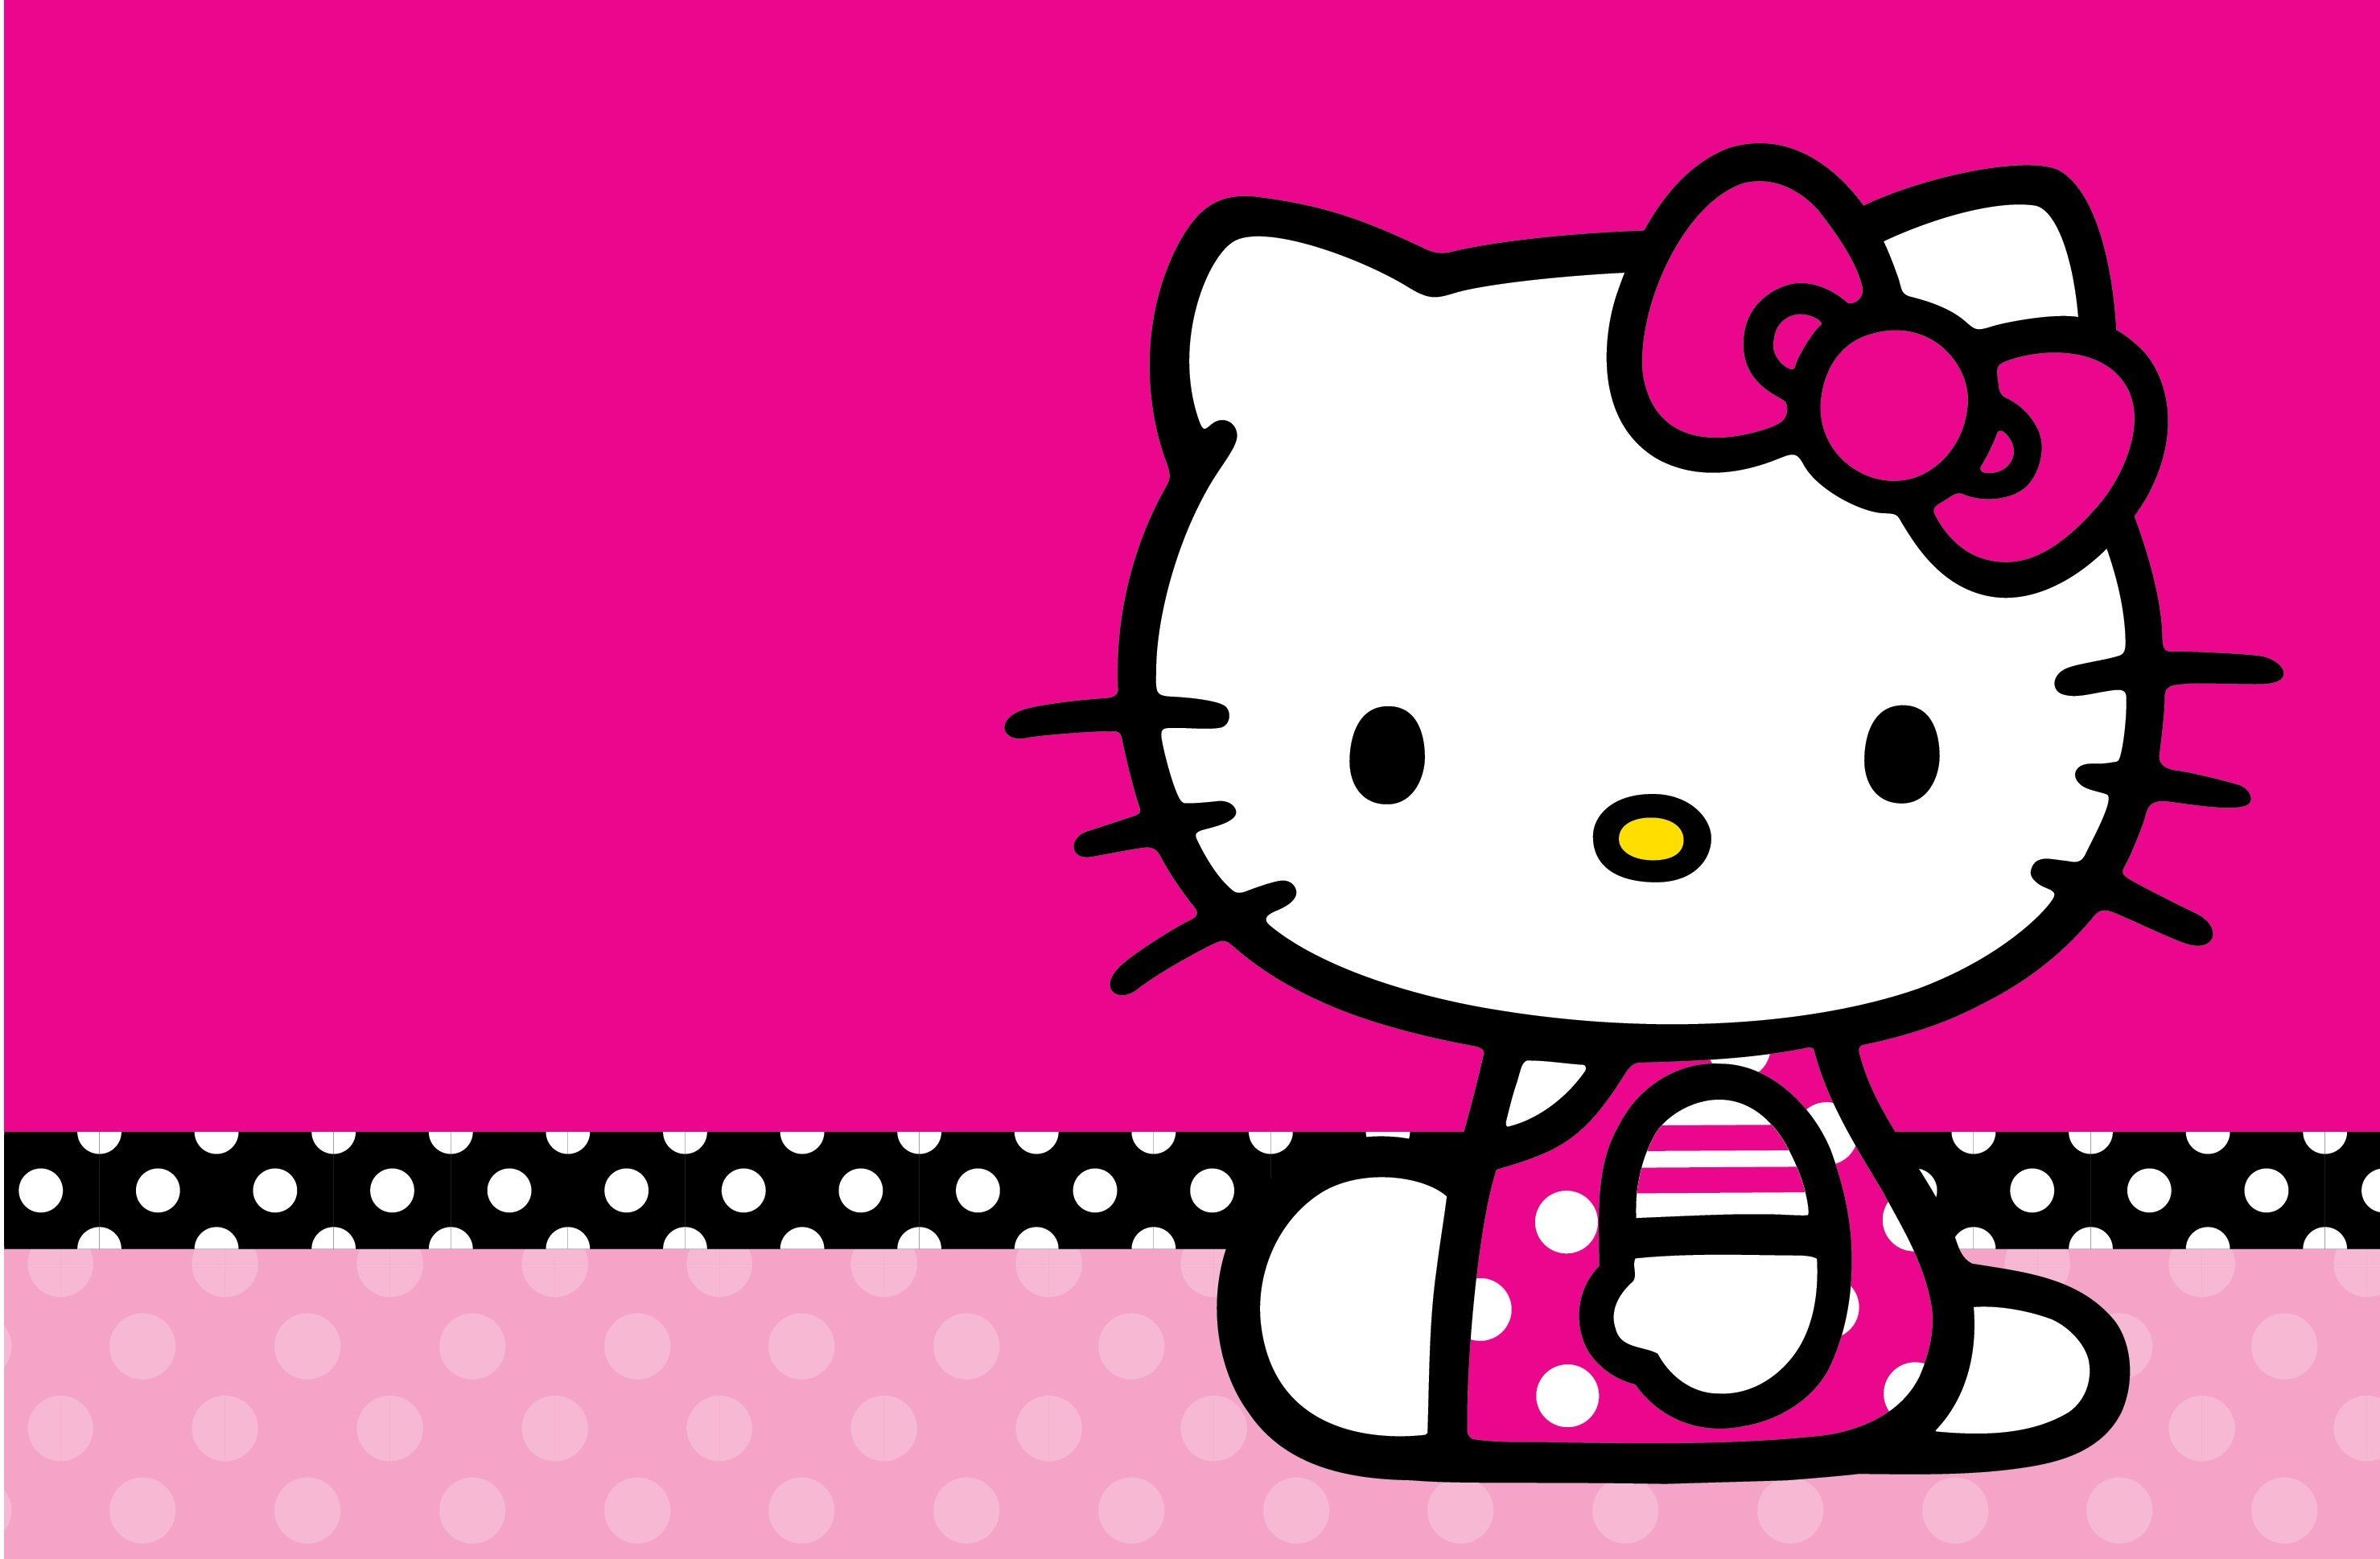 Hello Kitty Wallpaper for Pc 66 images 2958x1938